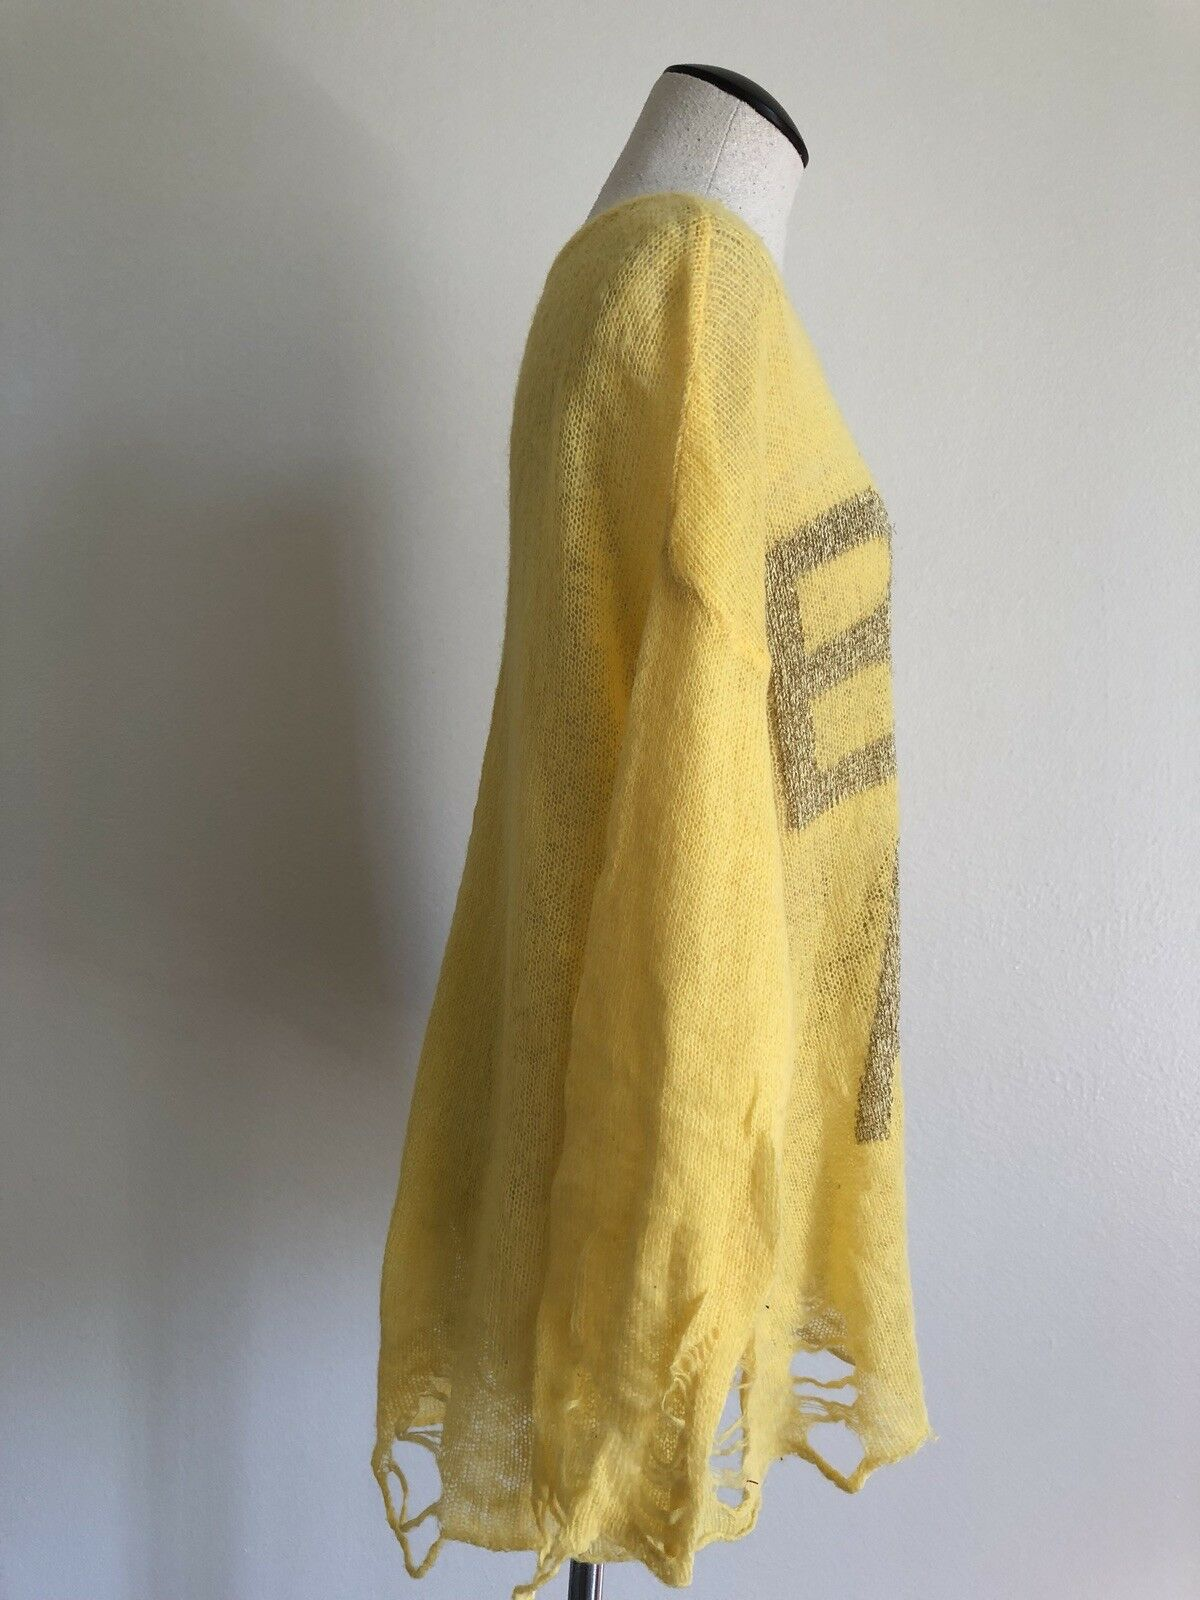 Wildfox White Label  BEL AIR  Destroyed Destroyed Destroyed Lightweight Loose Sweater Yellow gold XS 77f662